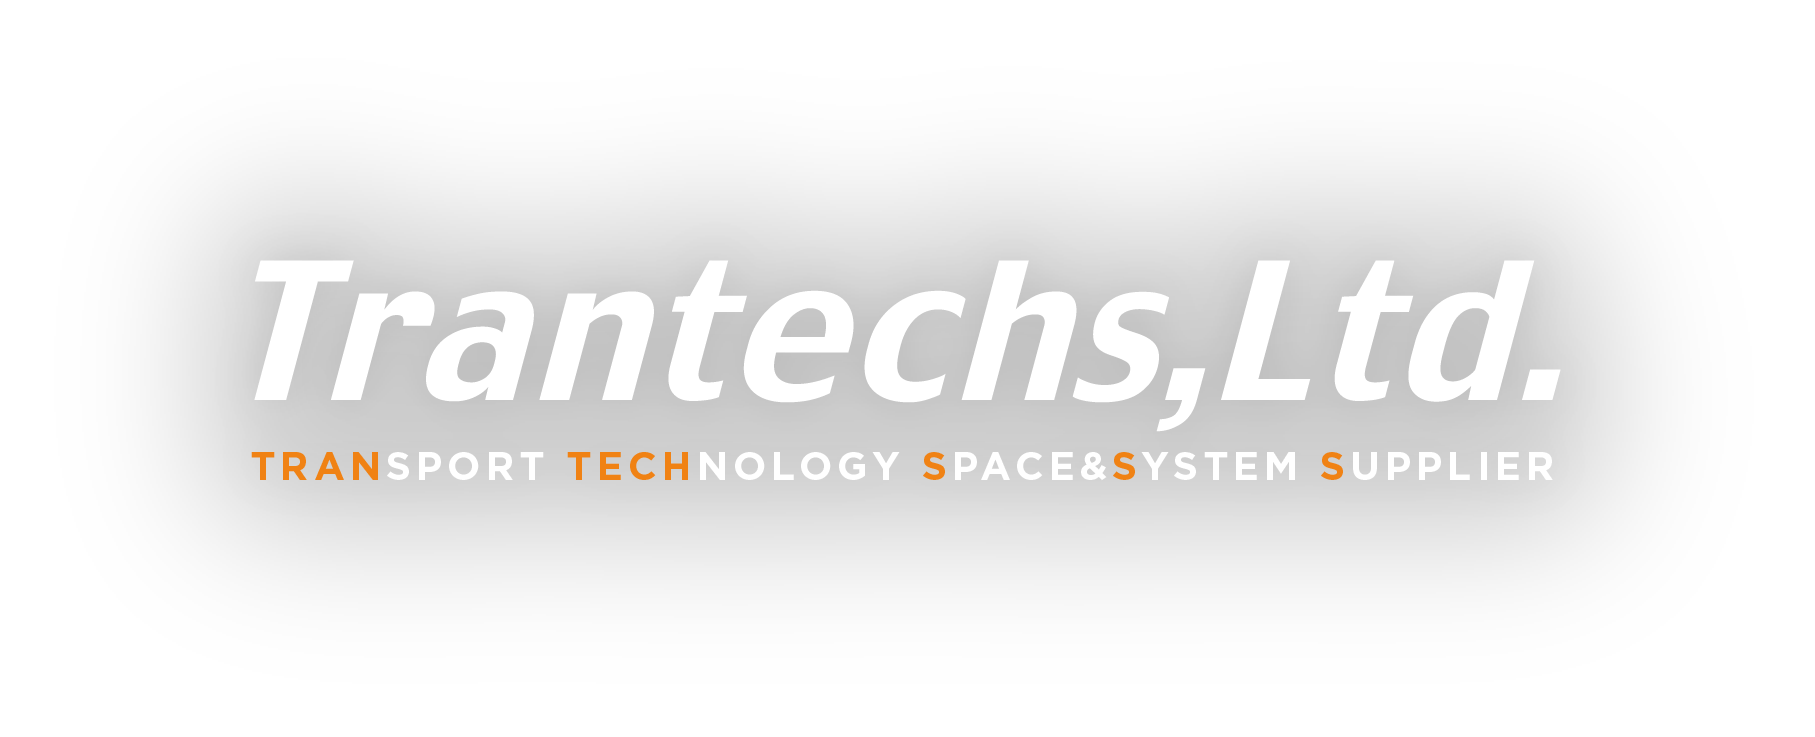 Tranteches,Ltd. TRANSPORT TECHNOLOGY SPACE&SYSTEM SUPPLIER